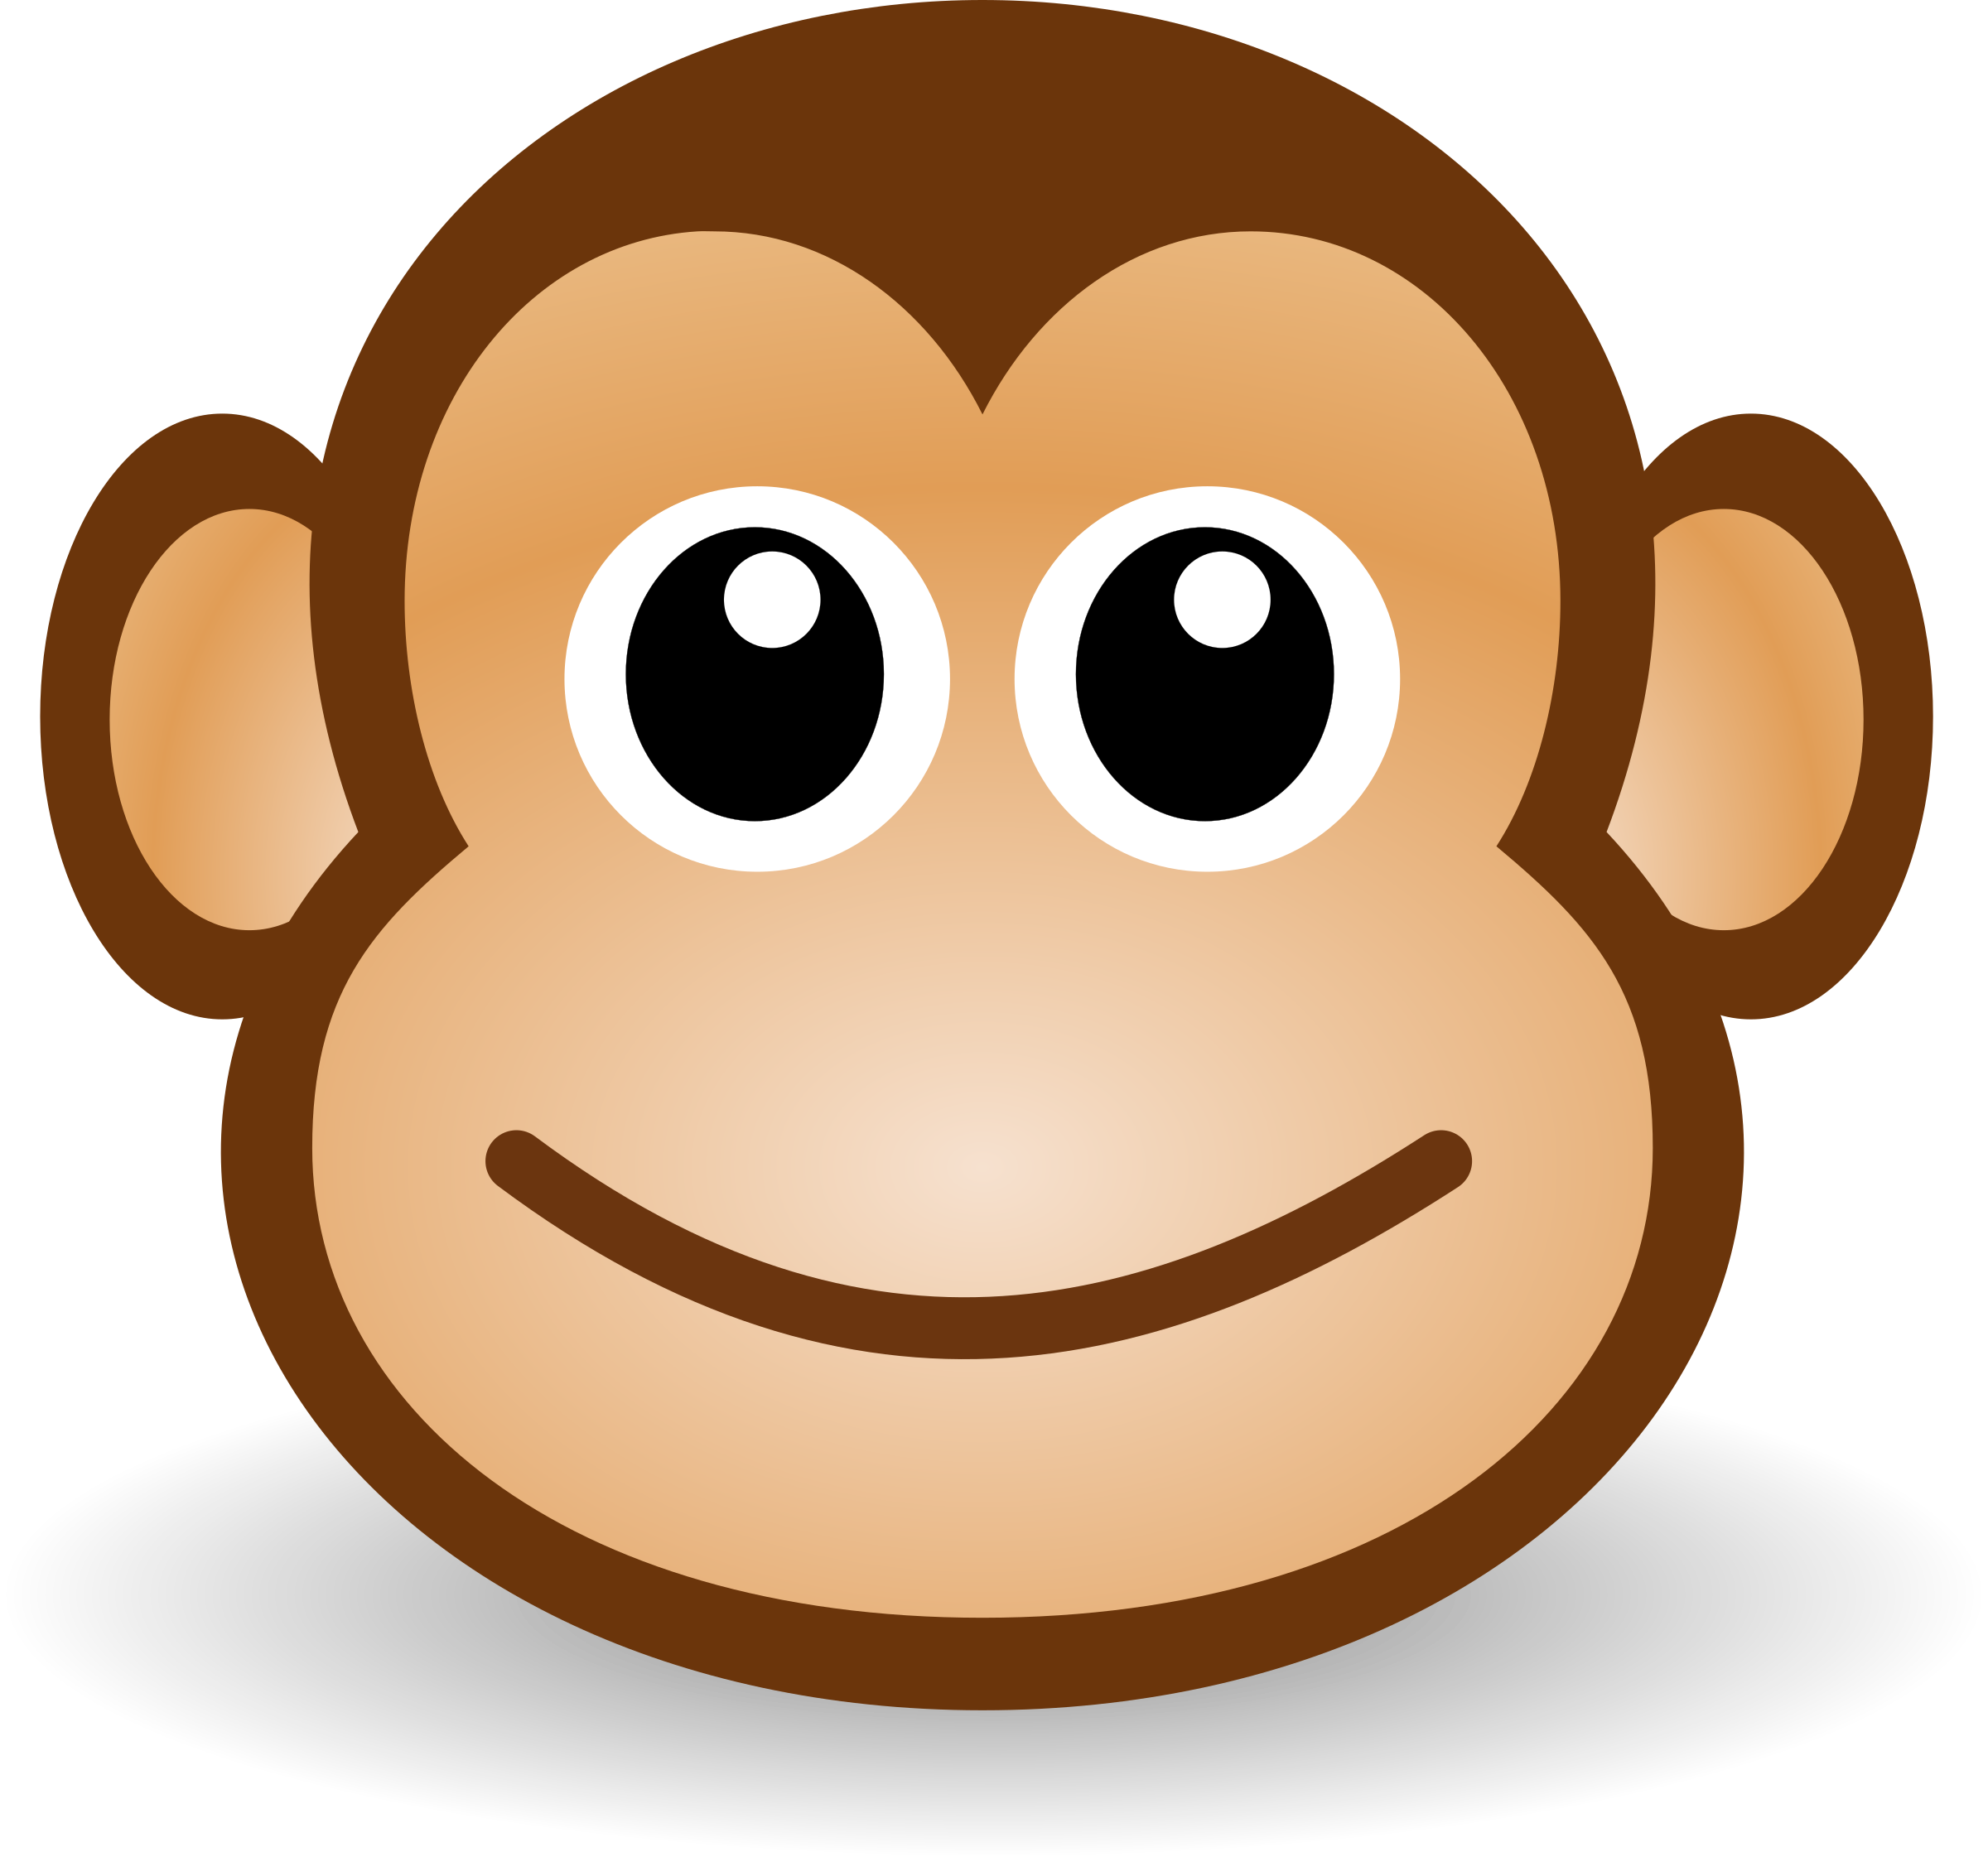 clip art freeuse library Monkey face clipart black and white. Funny big image png